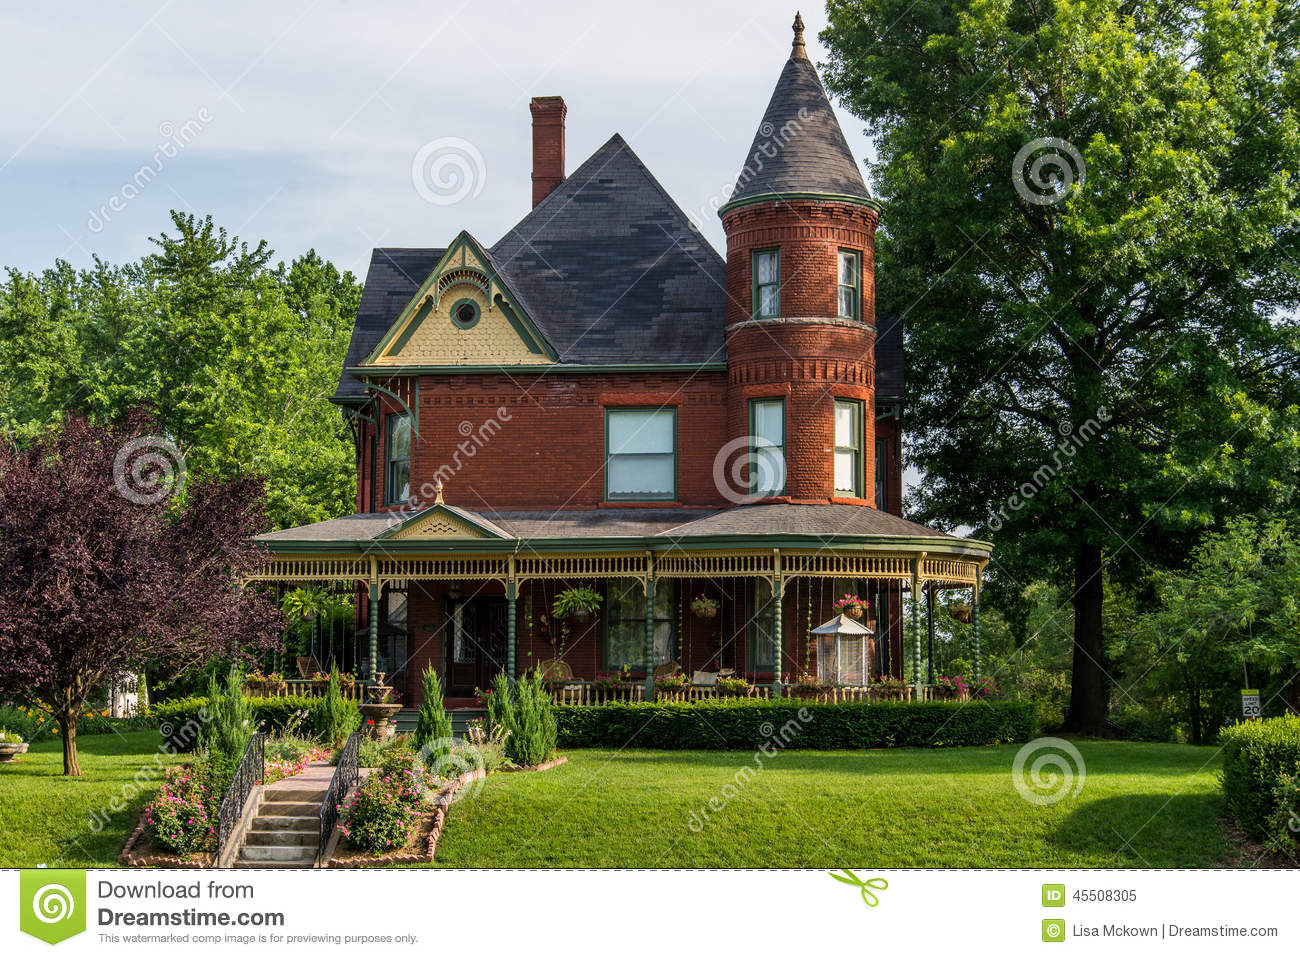 Victorian Brick Bed and Breakfast Home